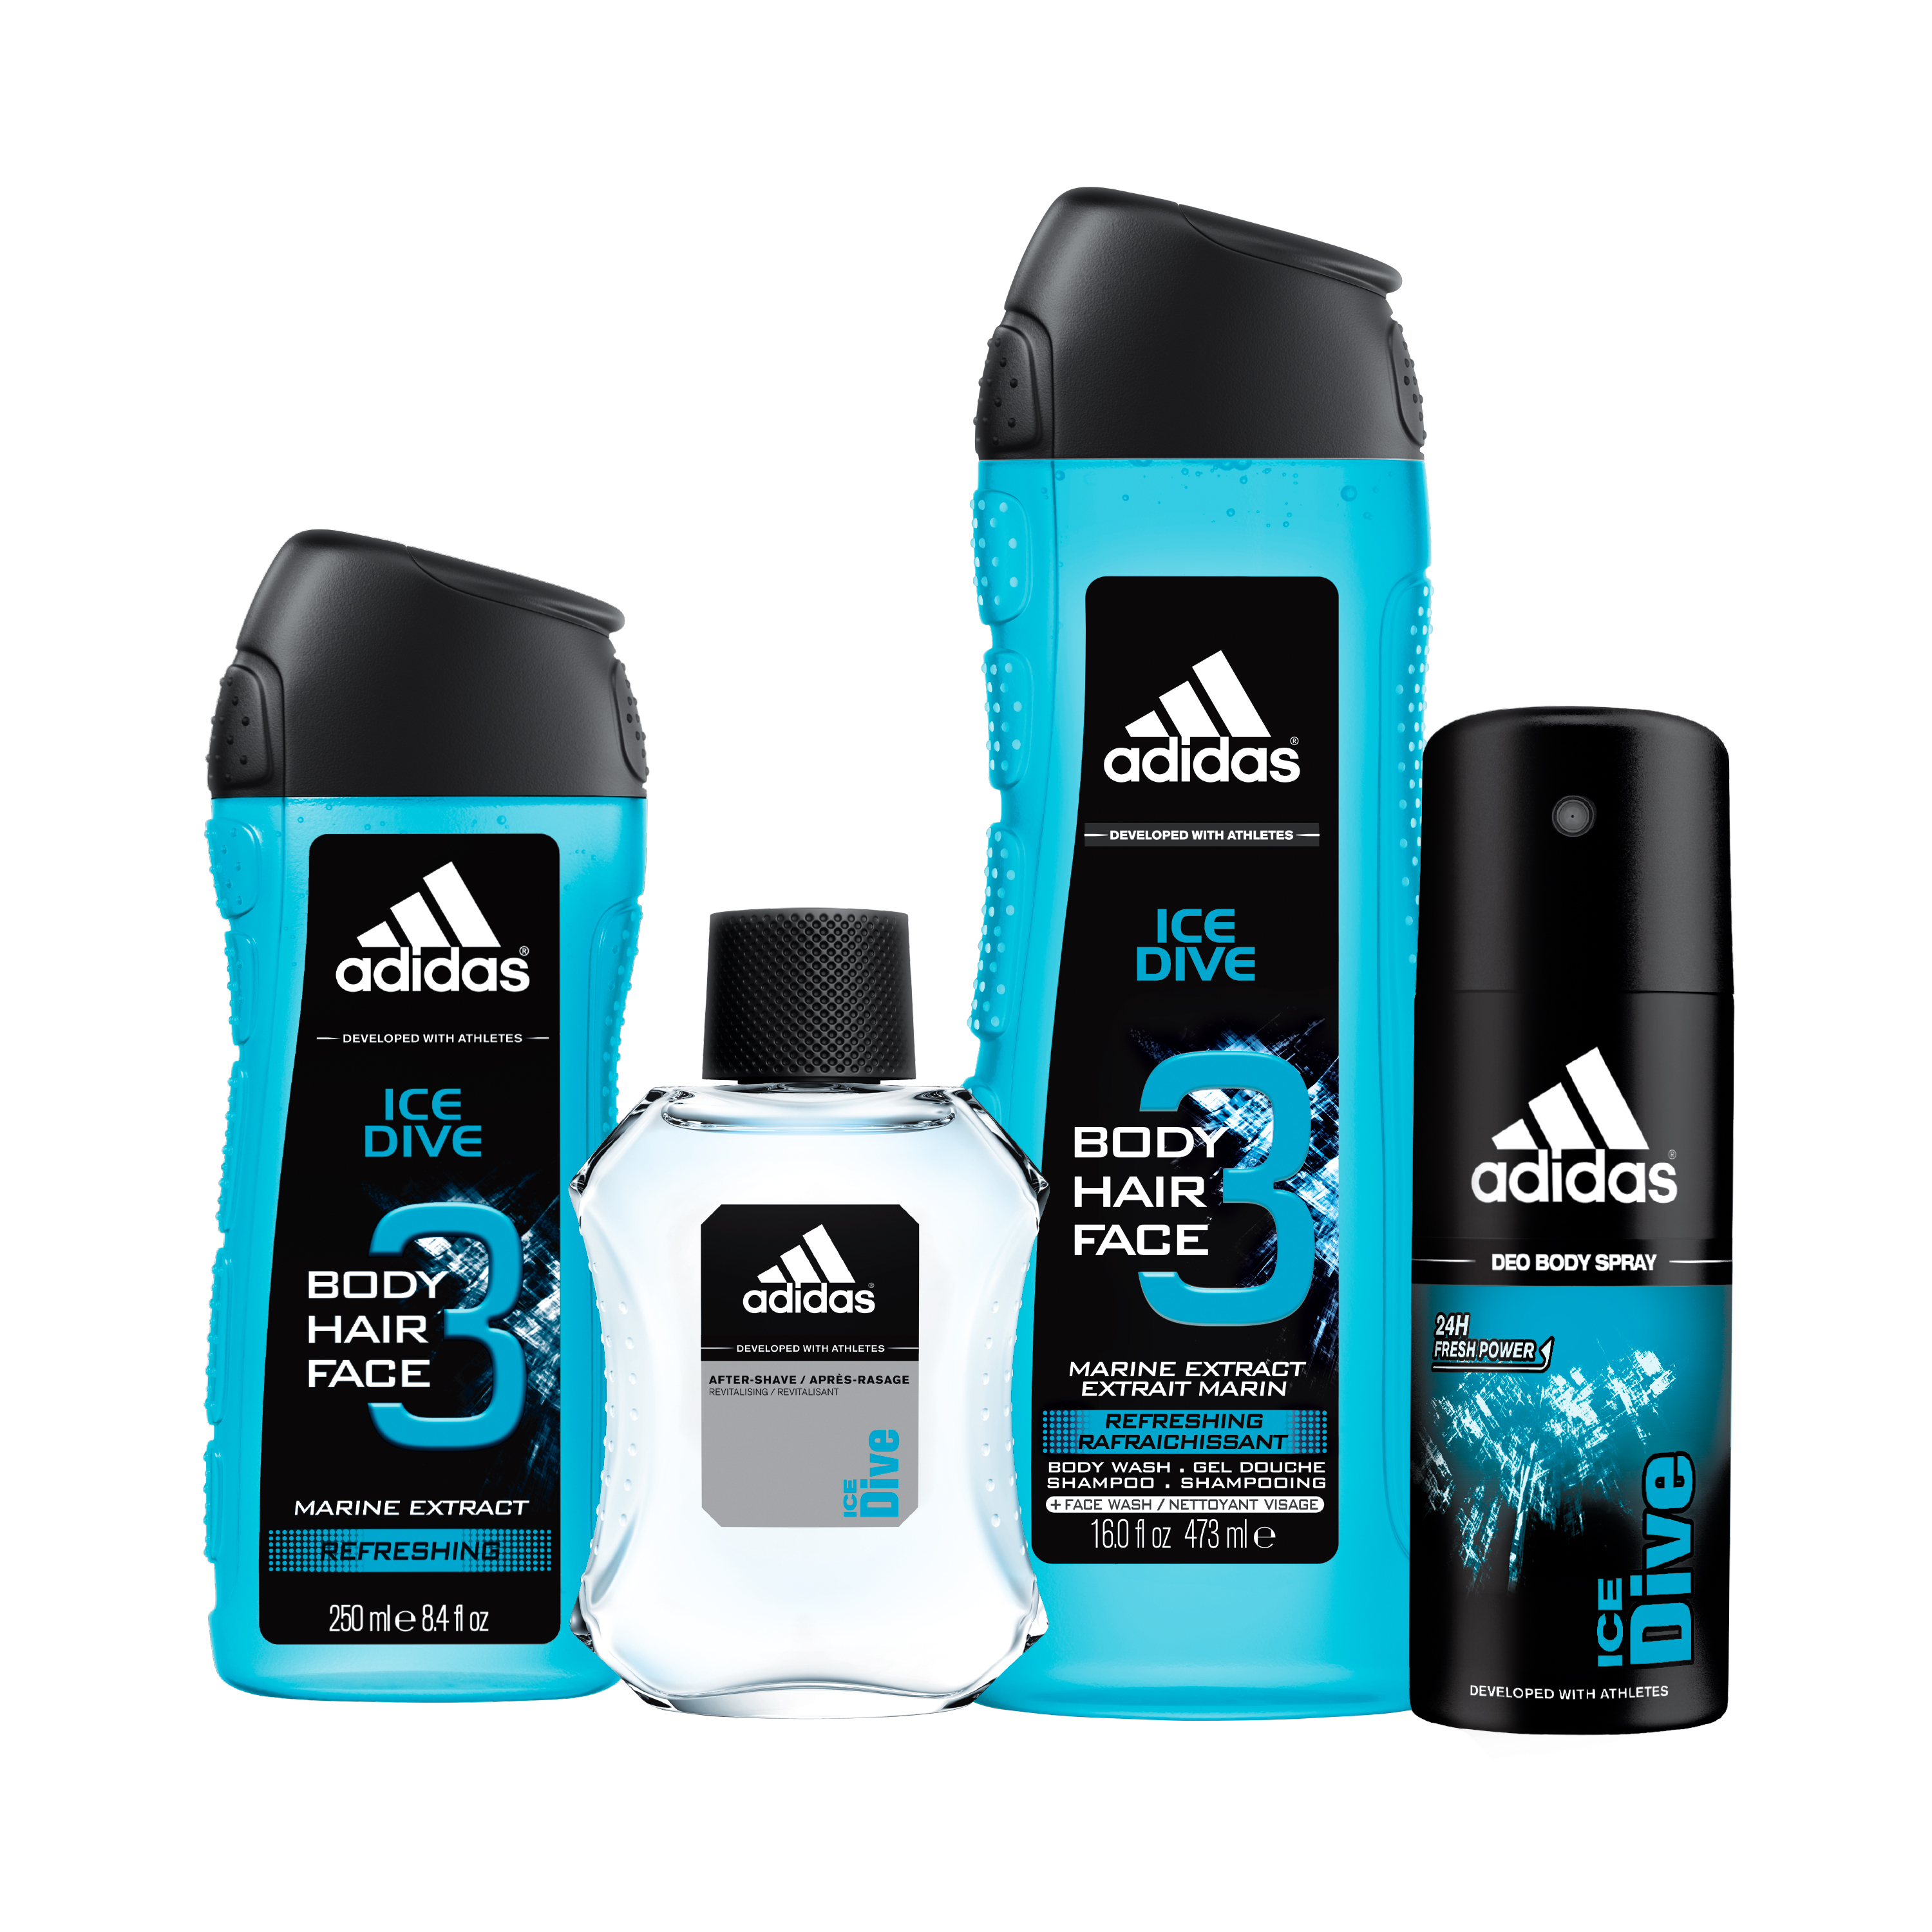 Adidas Ice Dive Aftershave, Body Spray & Body Wash Holiday Gift Set